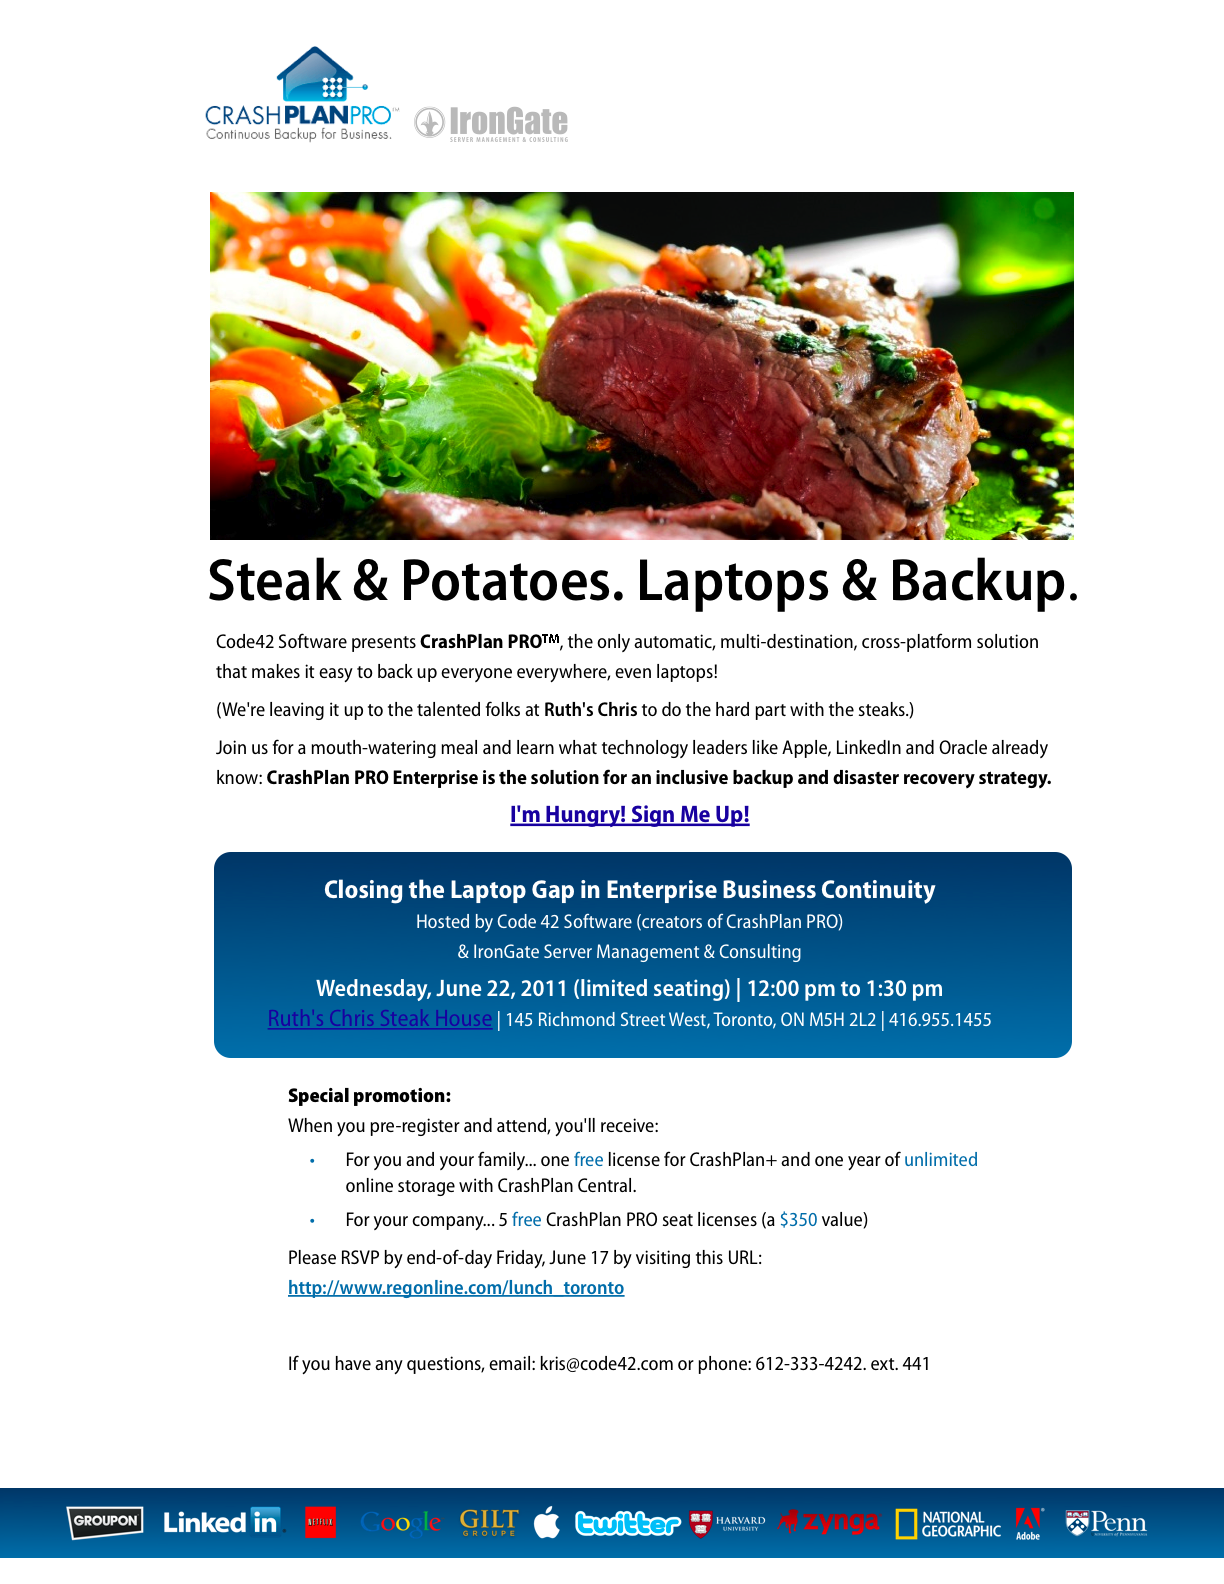 Toronto CrashPlan PROe Lunch and Learn